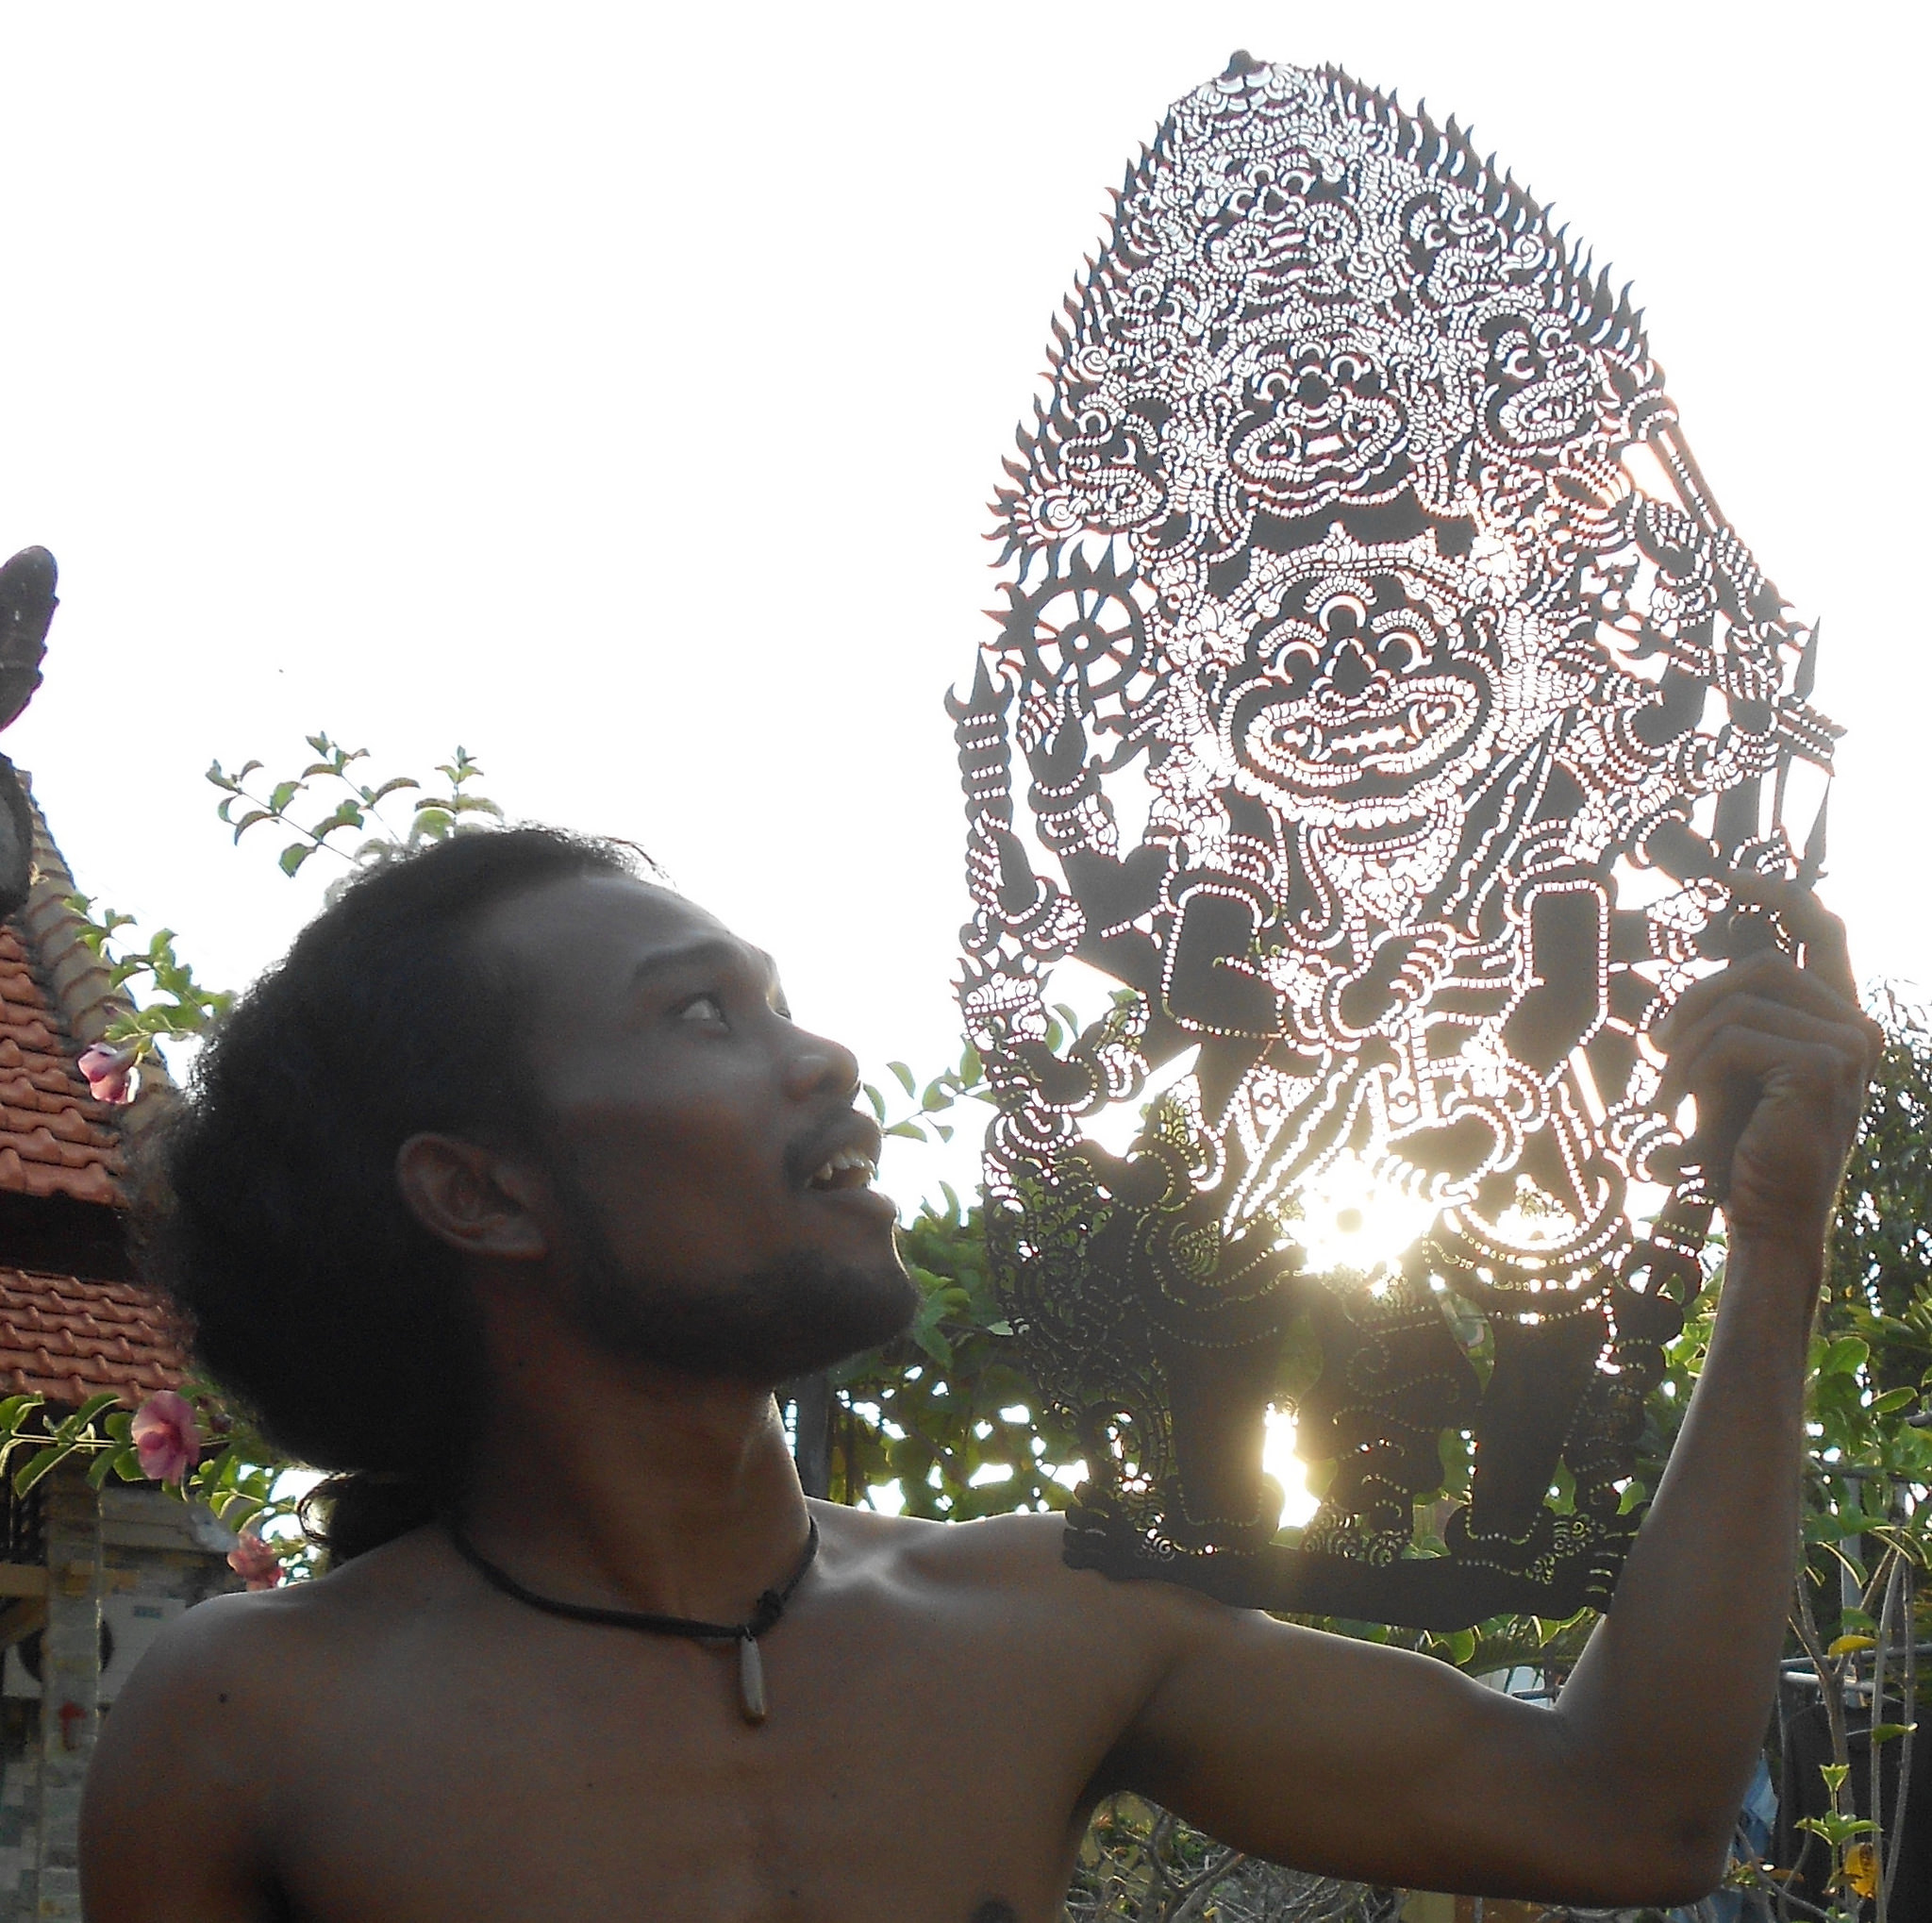 Shadows Beyond Borders:An Interdisciplinary Introduction to Balinese Puppetry, Mon Apr 11 at 6:30 to 8:30pm